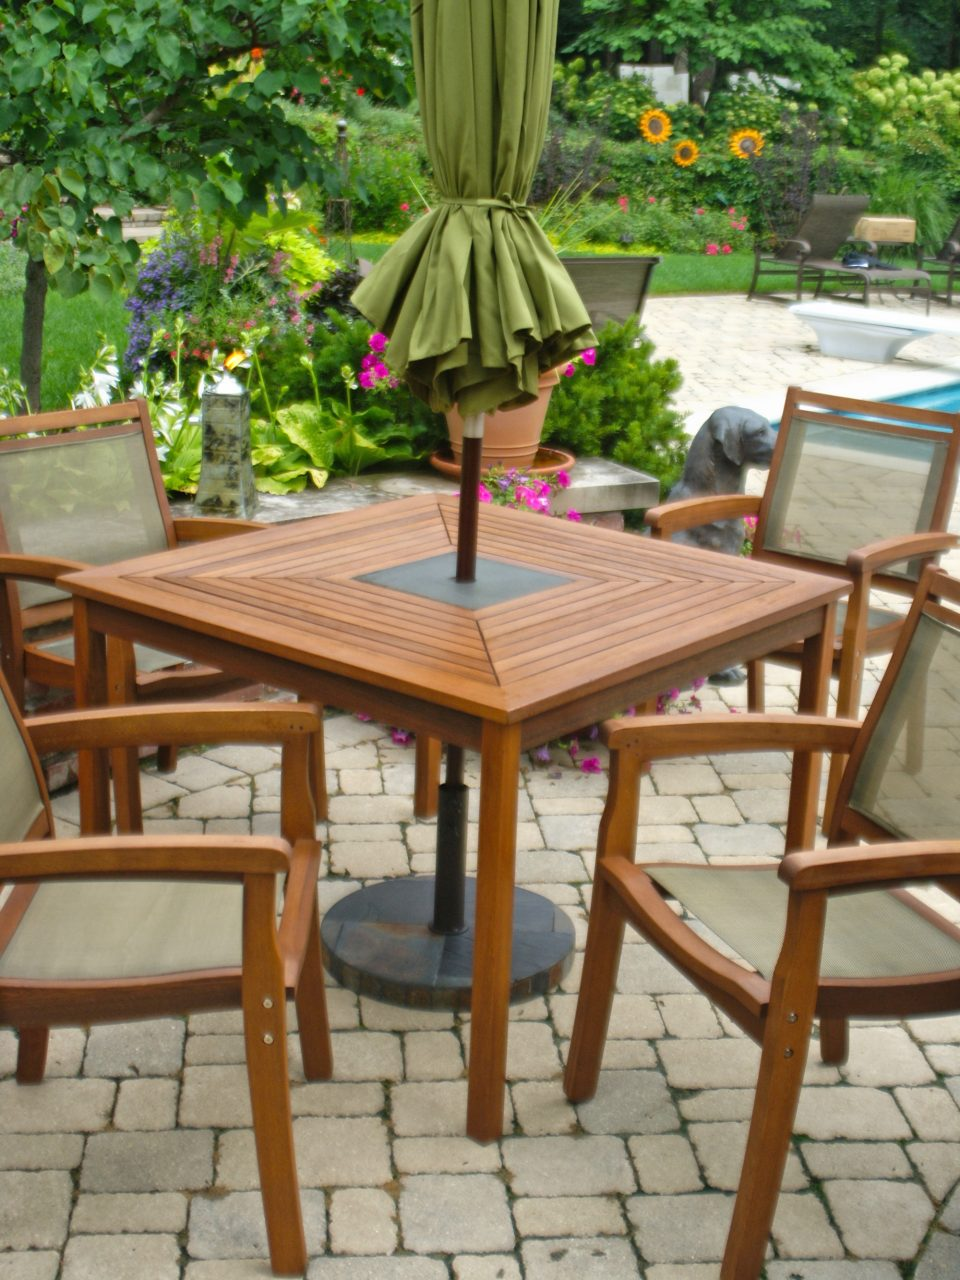 Deck Dining Sets With Outdoors Chairs Plus Outdoor Furniture Set